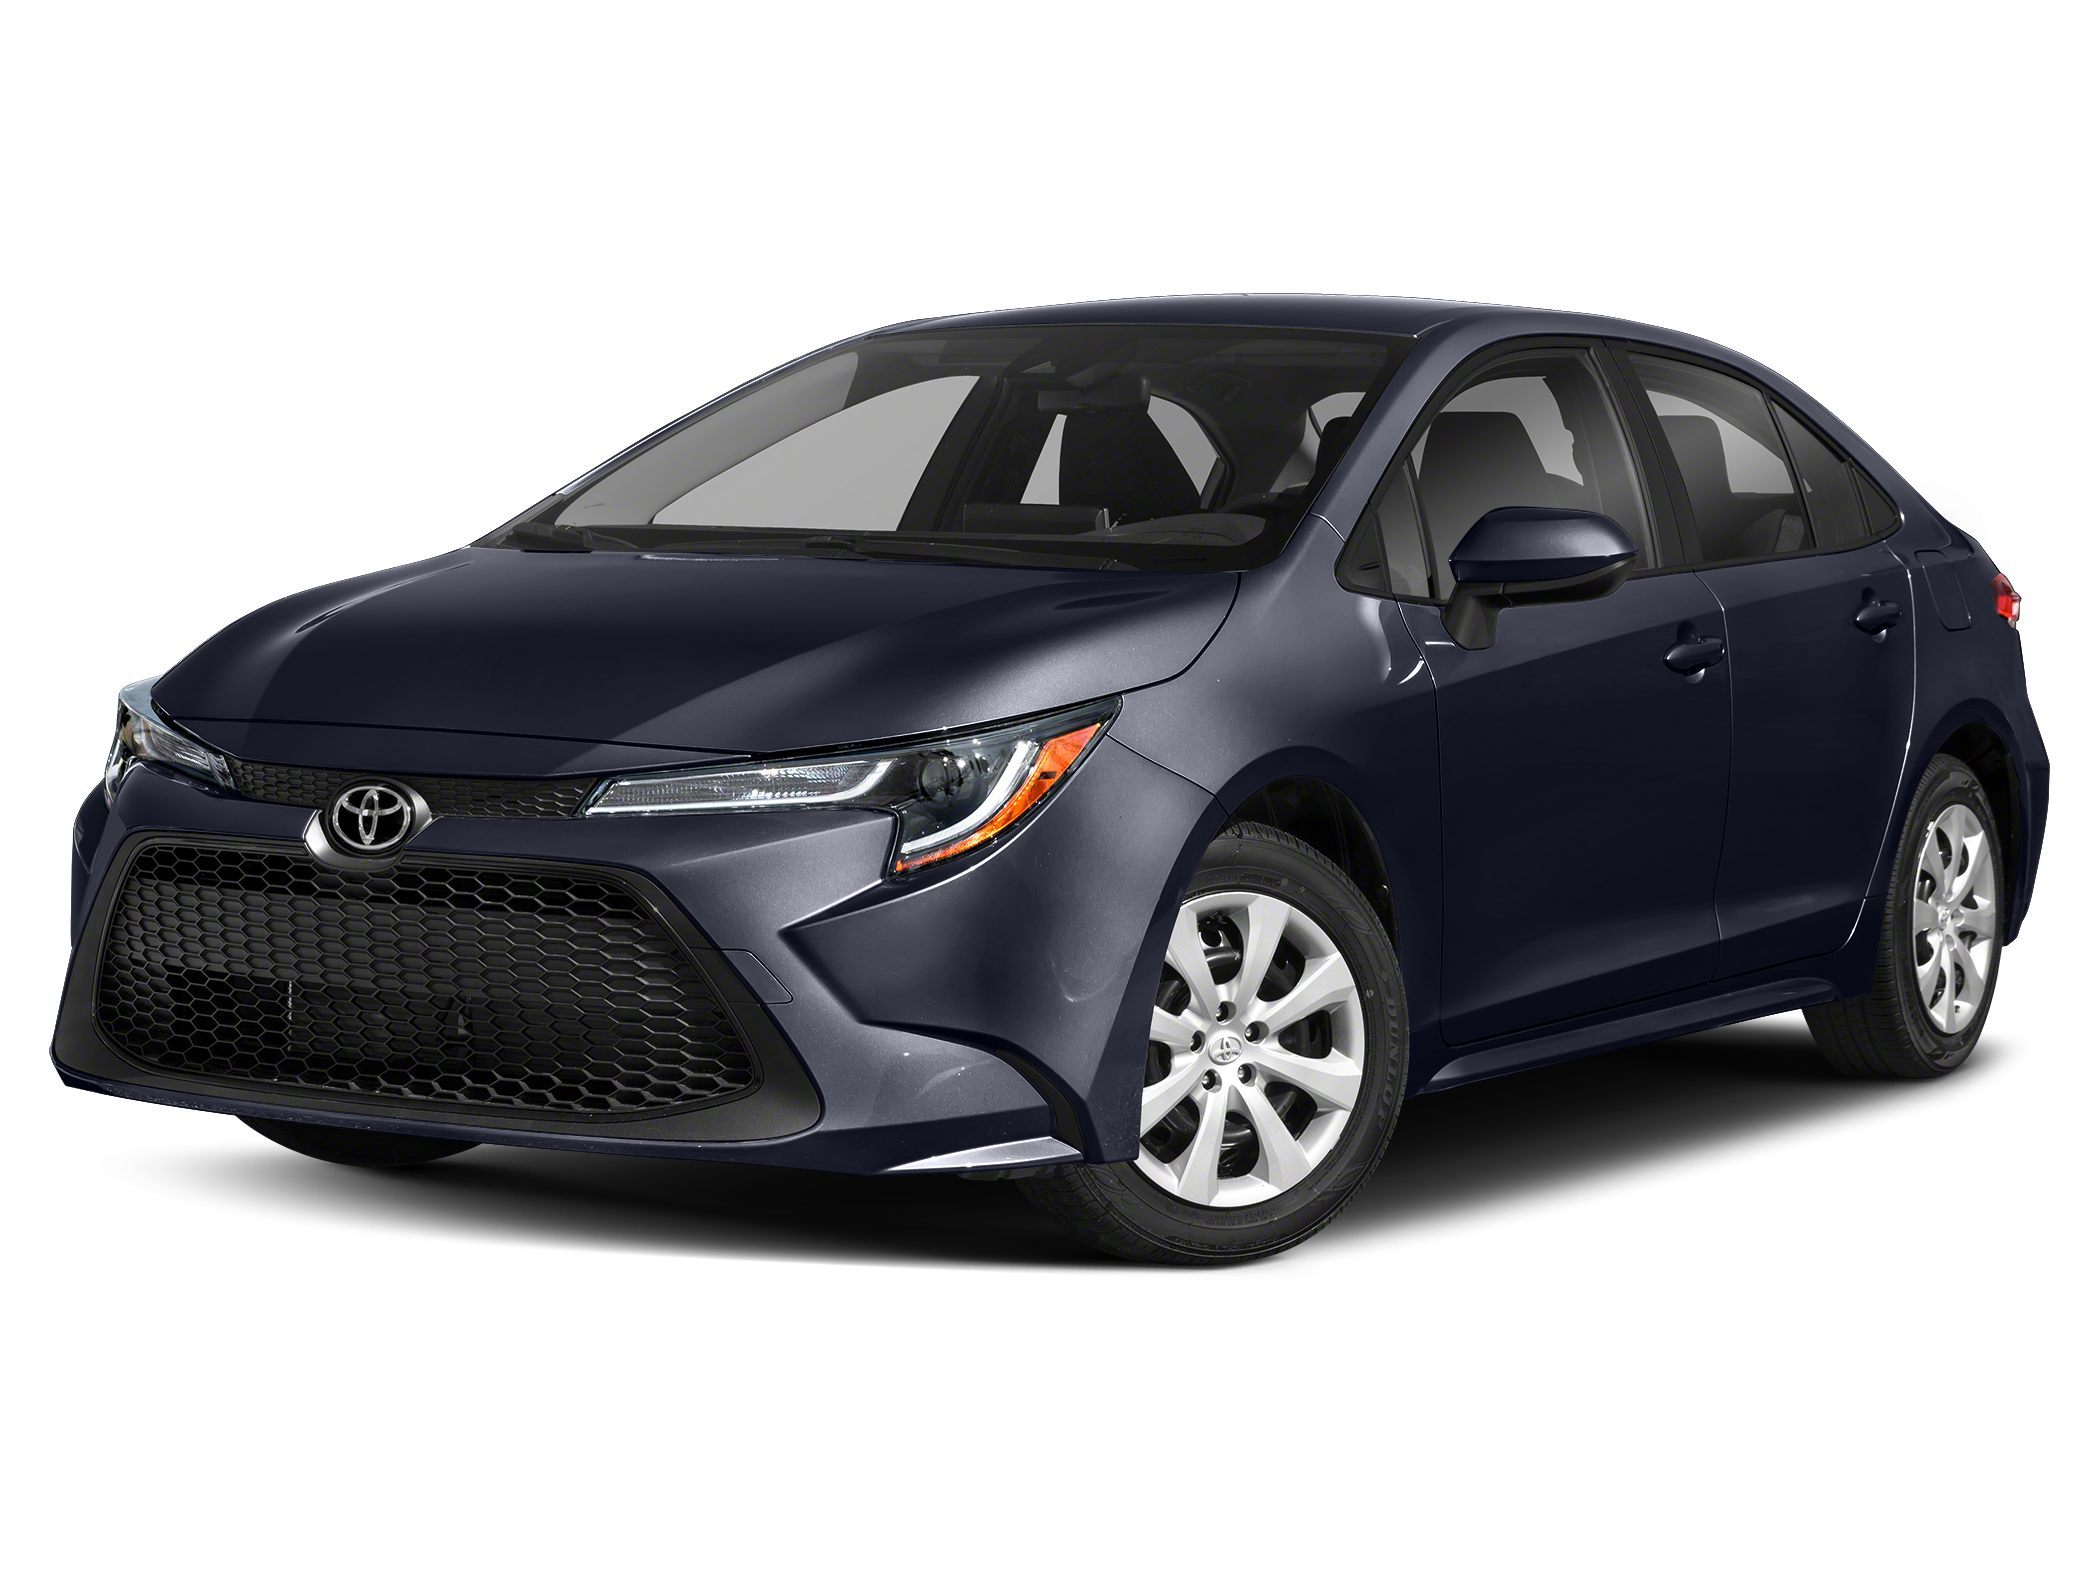 used 2020 Toyota Corolla car, priced at $16,998